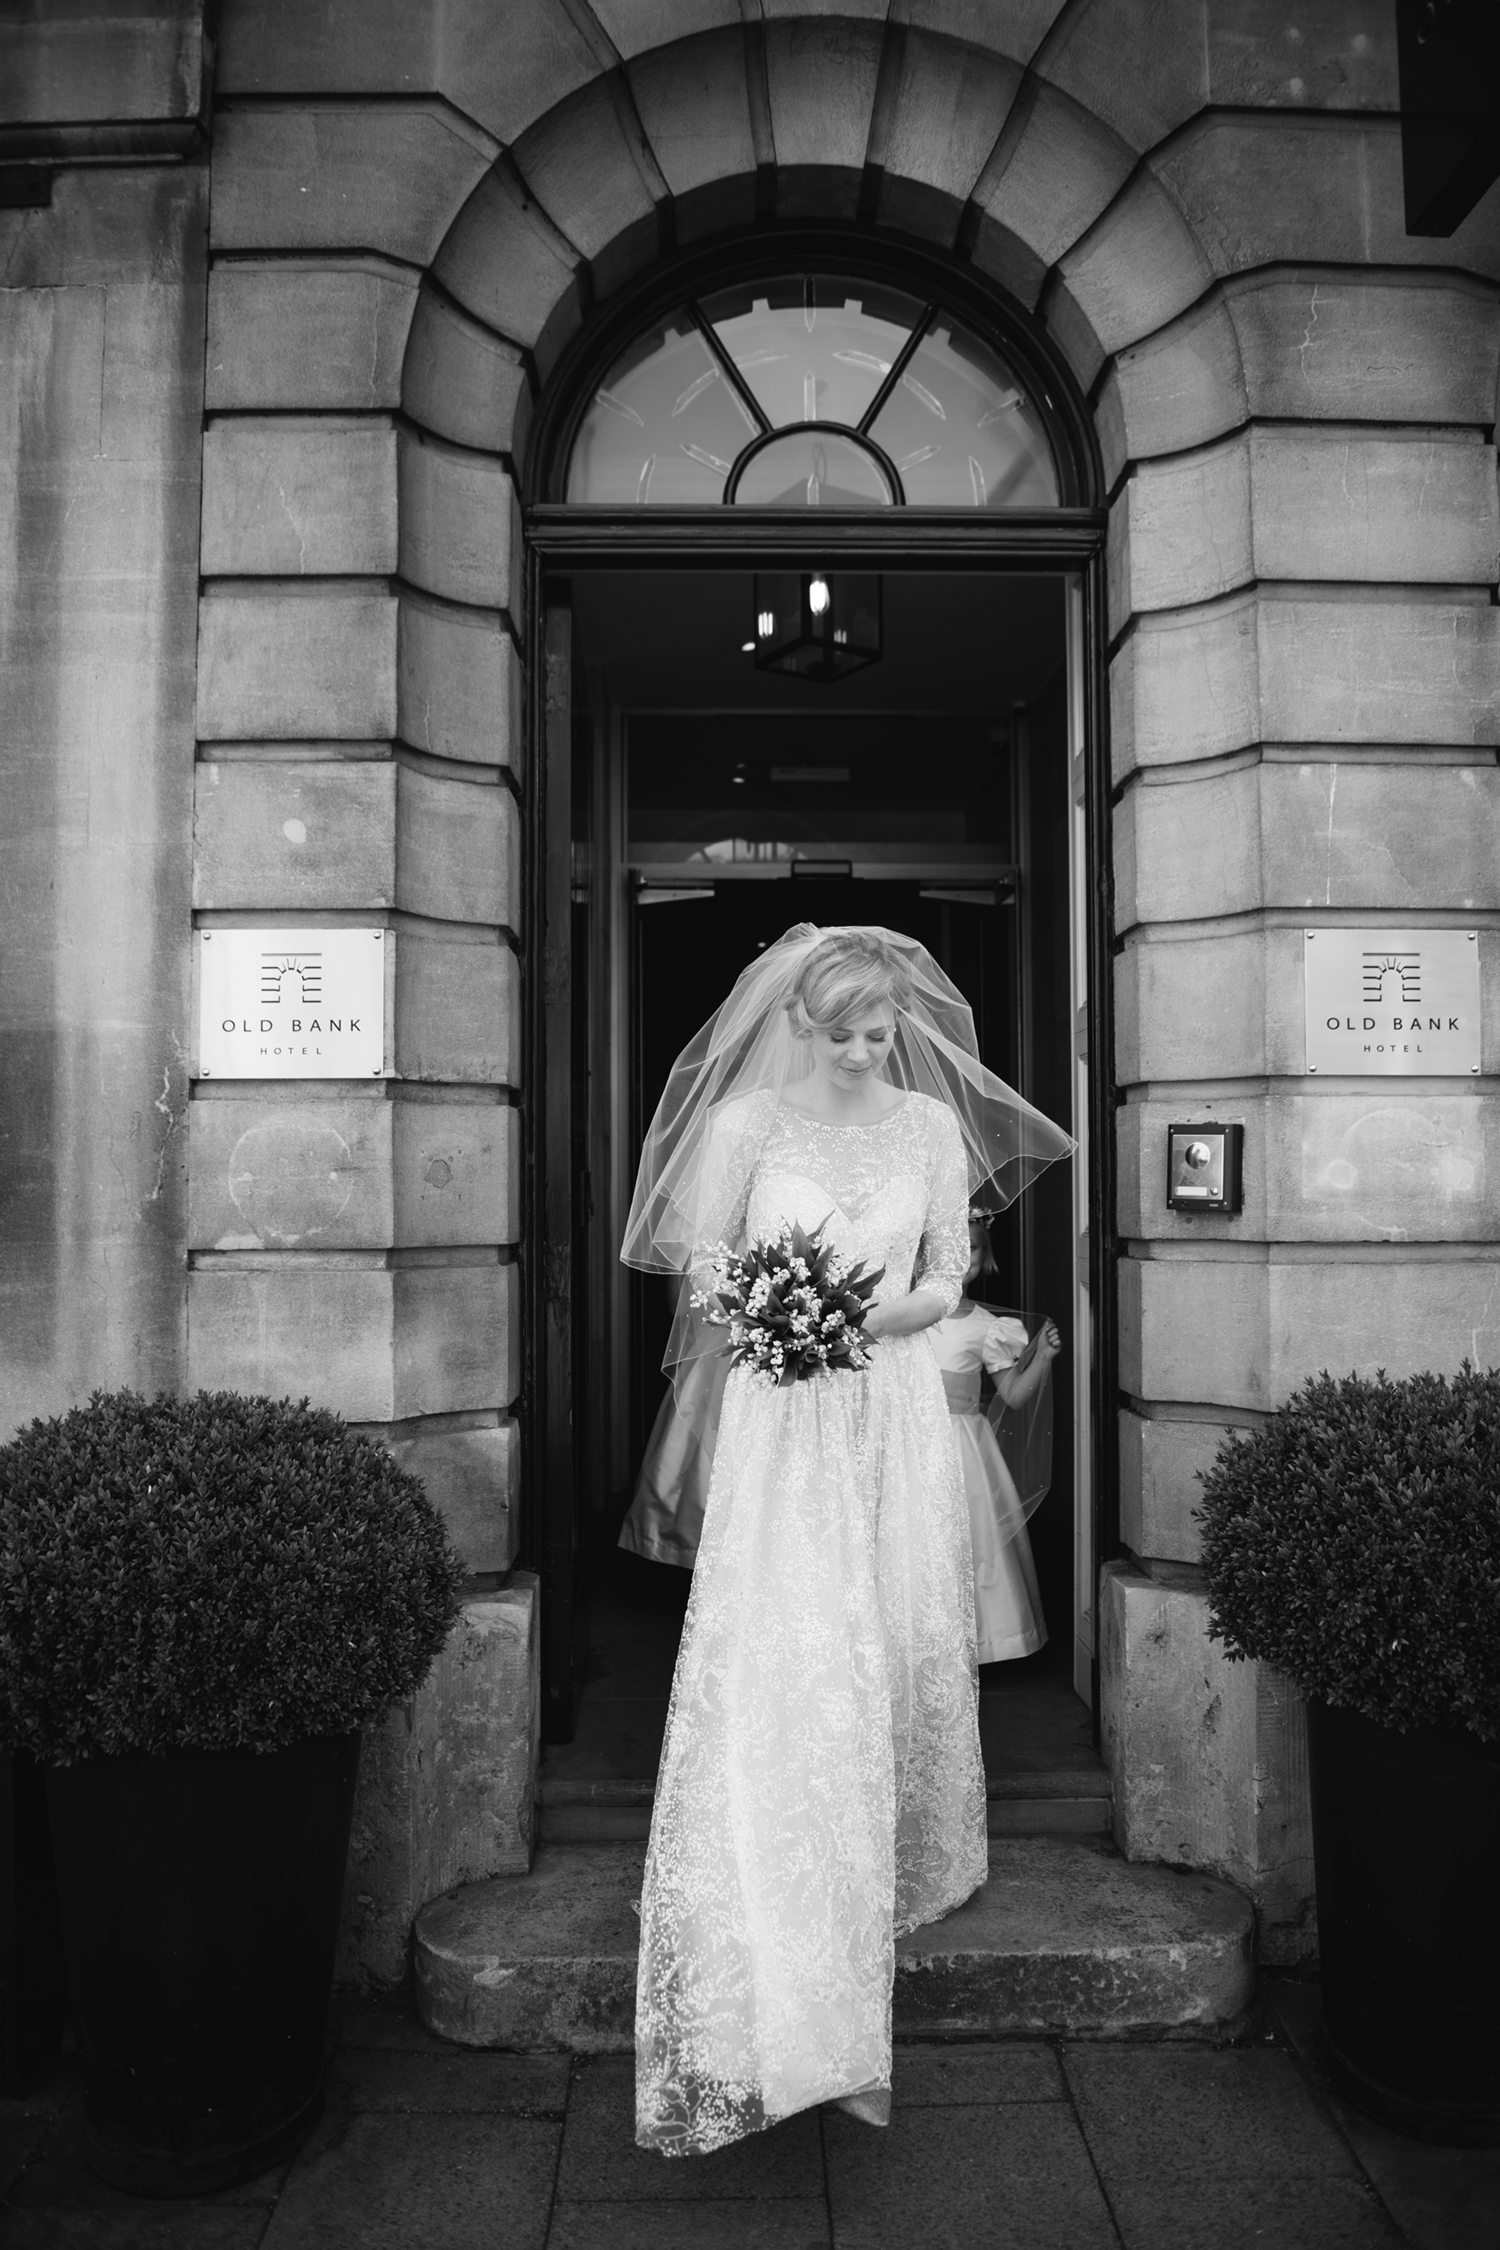 Oxford-University-Wedding-Photographer-0031.jpg